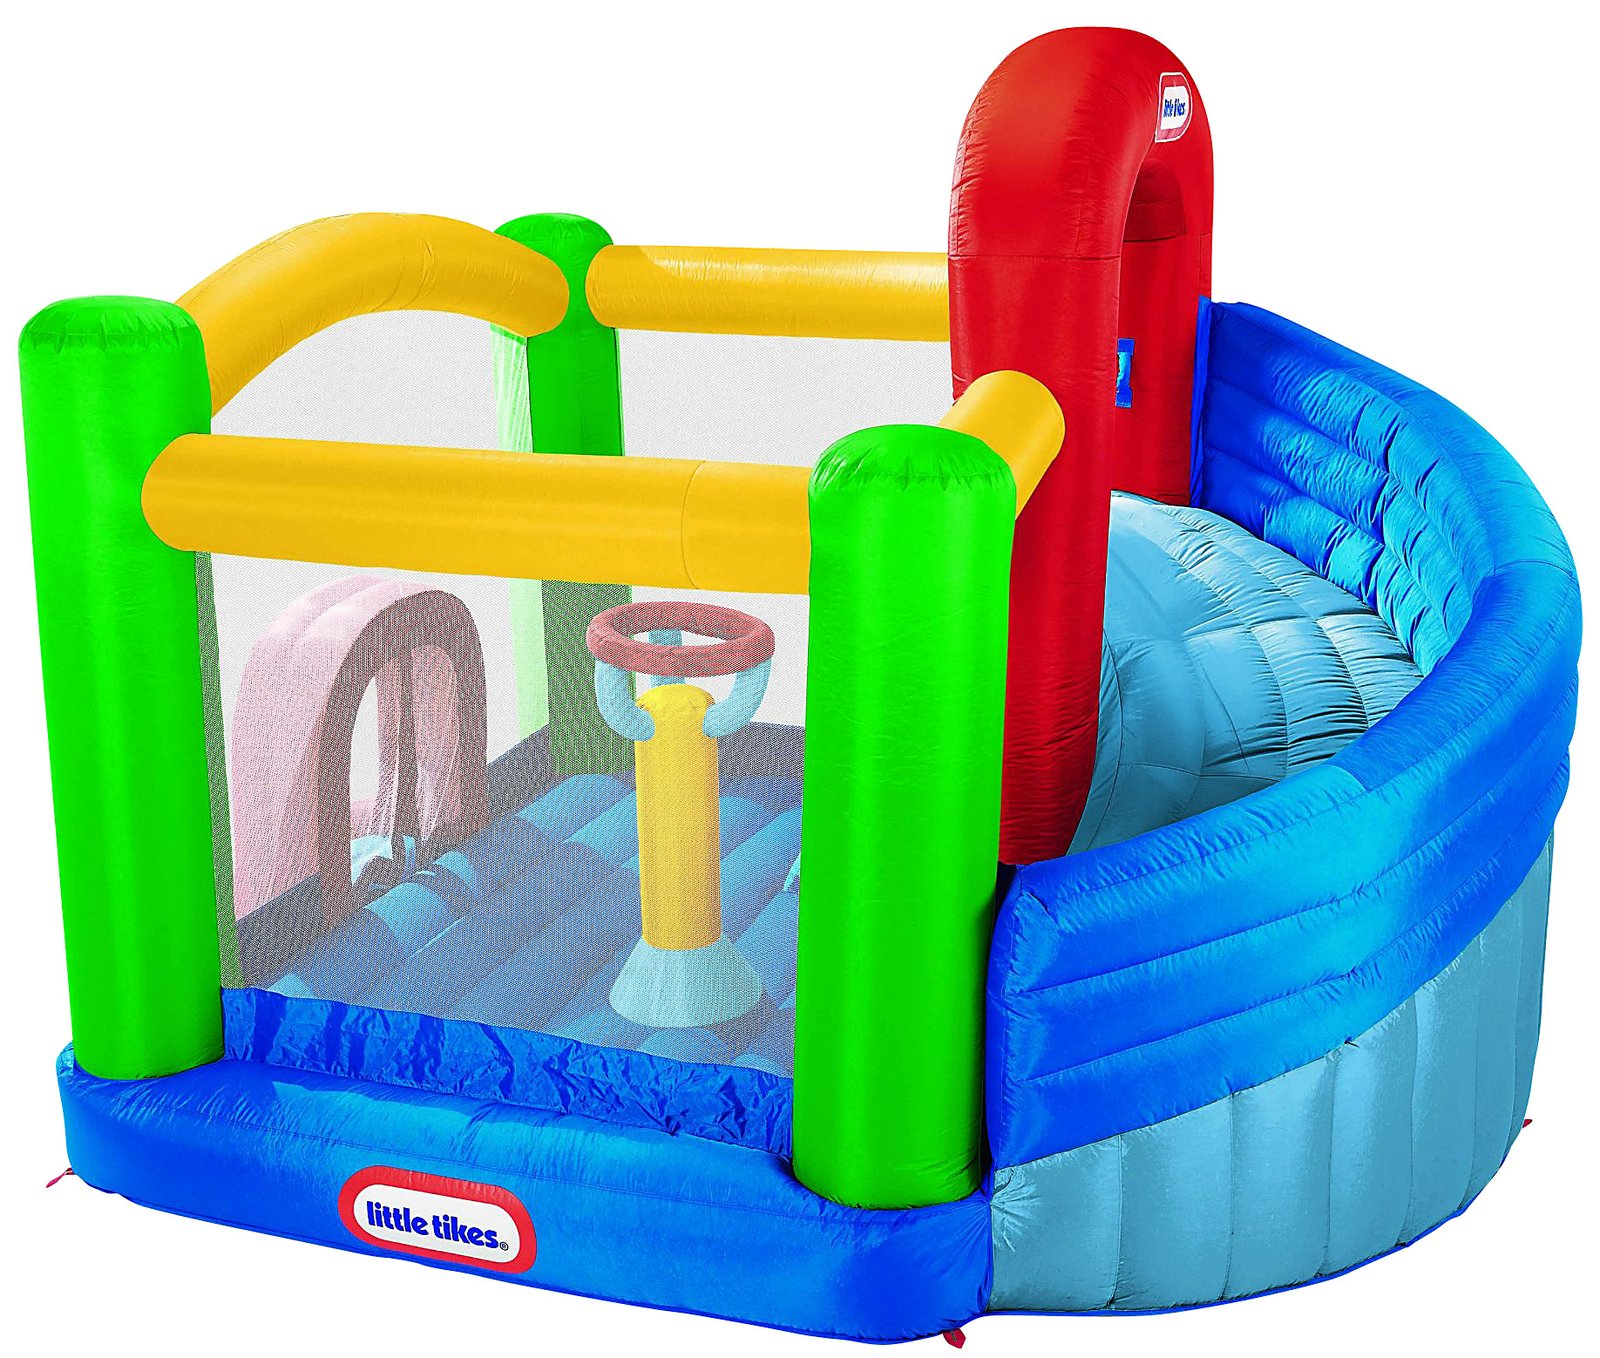 Fancy Little Tikes Bounce House For Play Yard Ideas: Fancy Little Tikes Bounce House Made Of Caoutchouc With Balcony Design For Play Yard Ideas